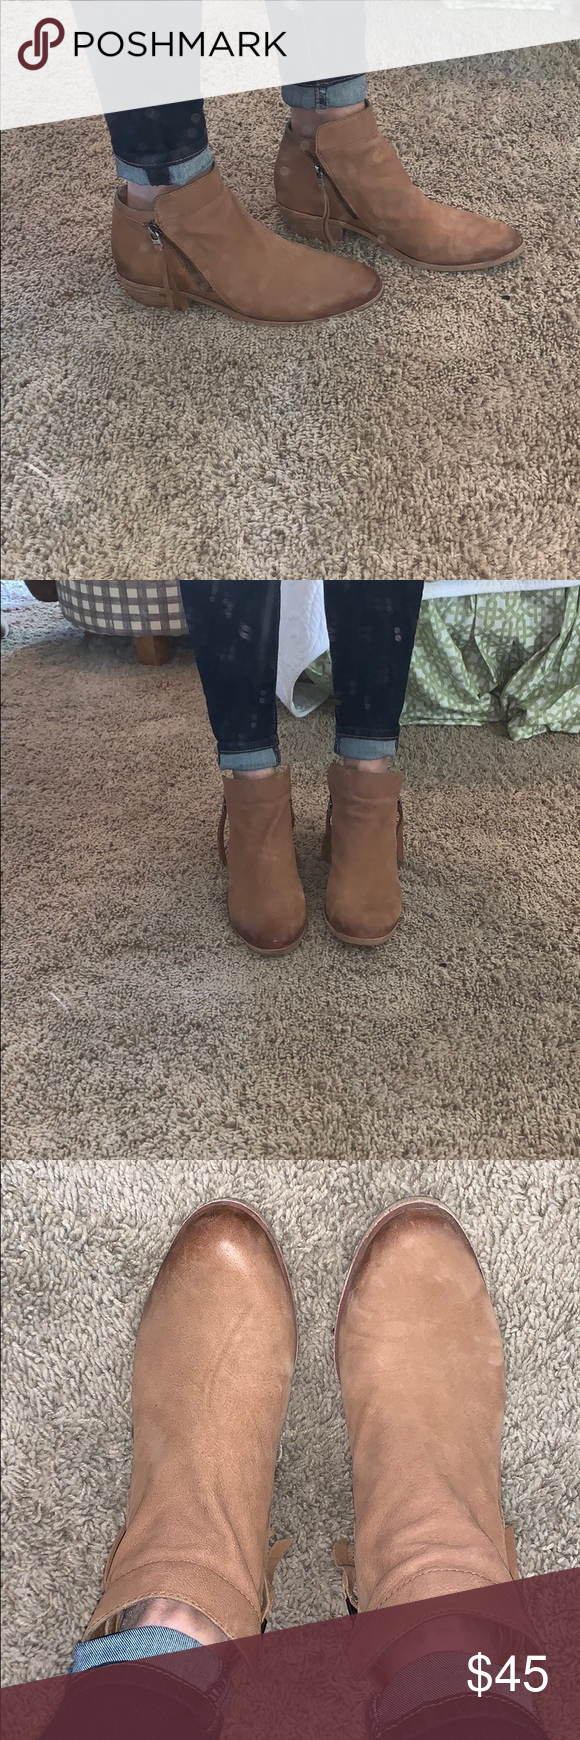 "aace686c425378 Sam Edelman Packer booties Side zip ankle bootie. Working zippers on both  sides. Almond toe. Heel height is 1.75"". Saddle leather. Worn a only few  times."